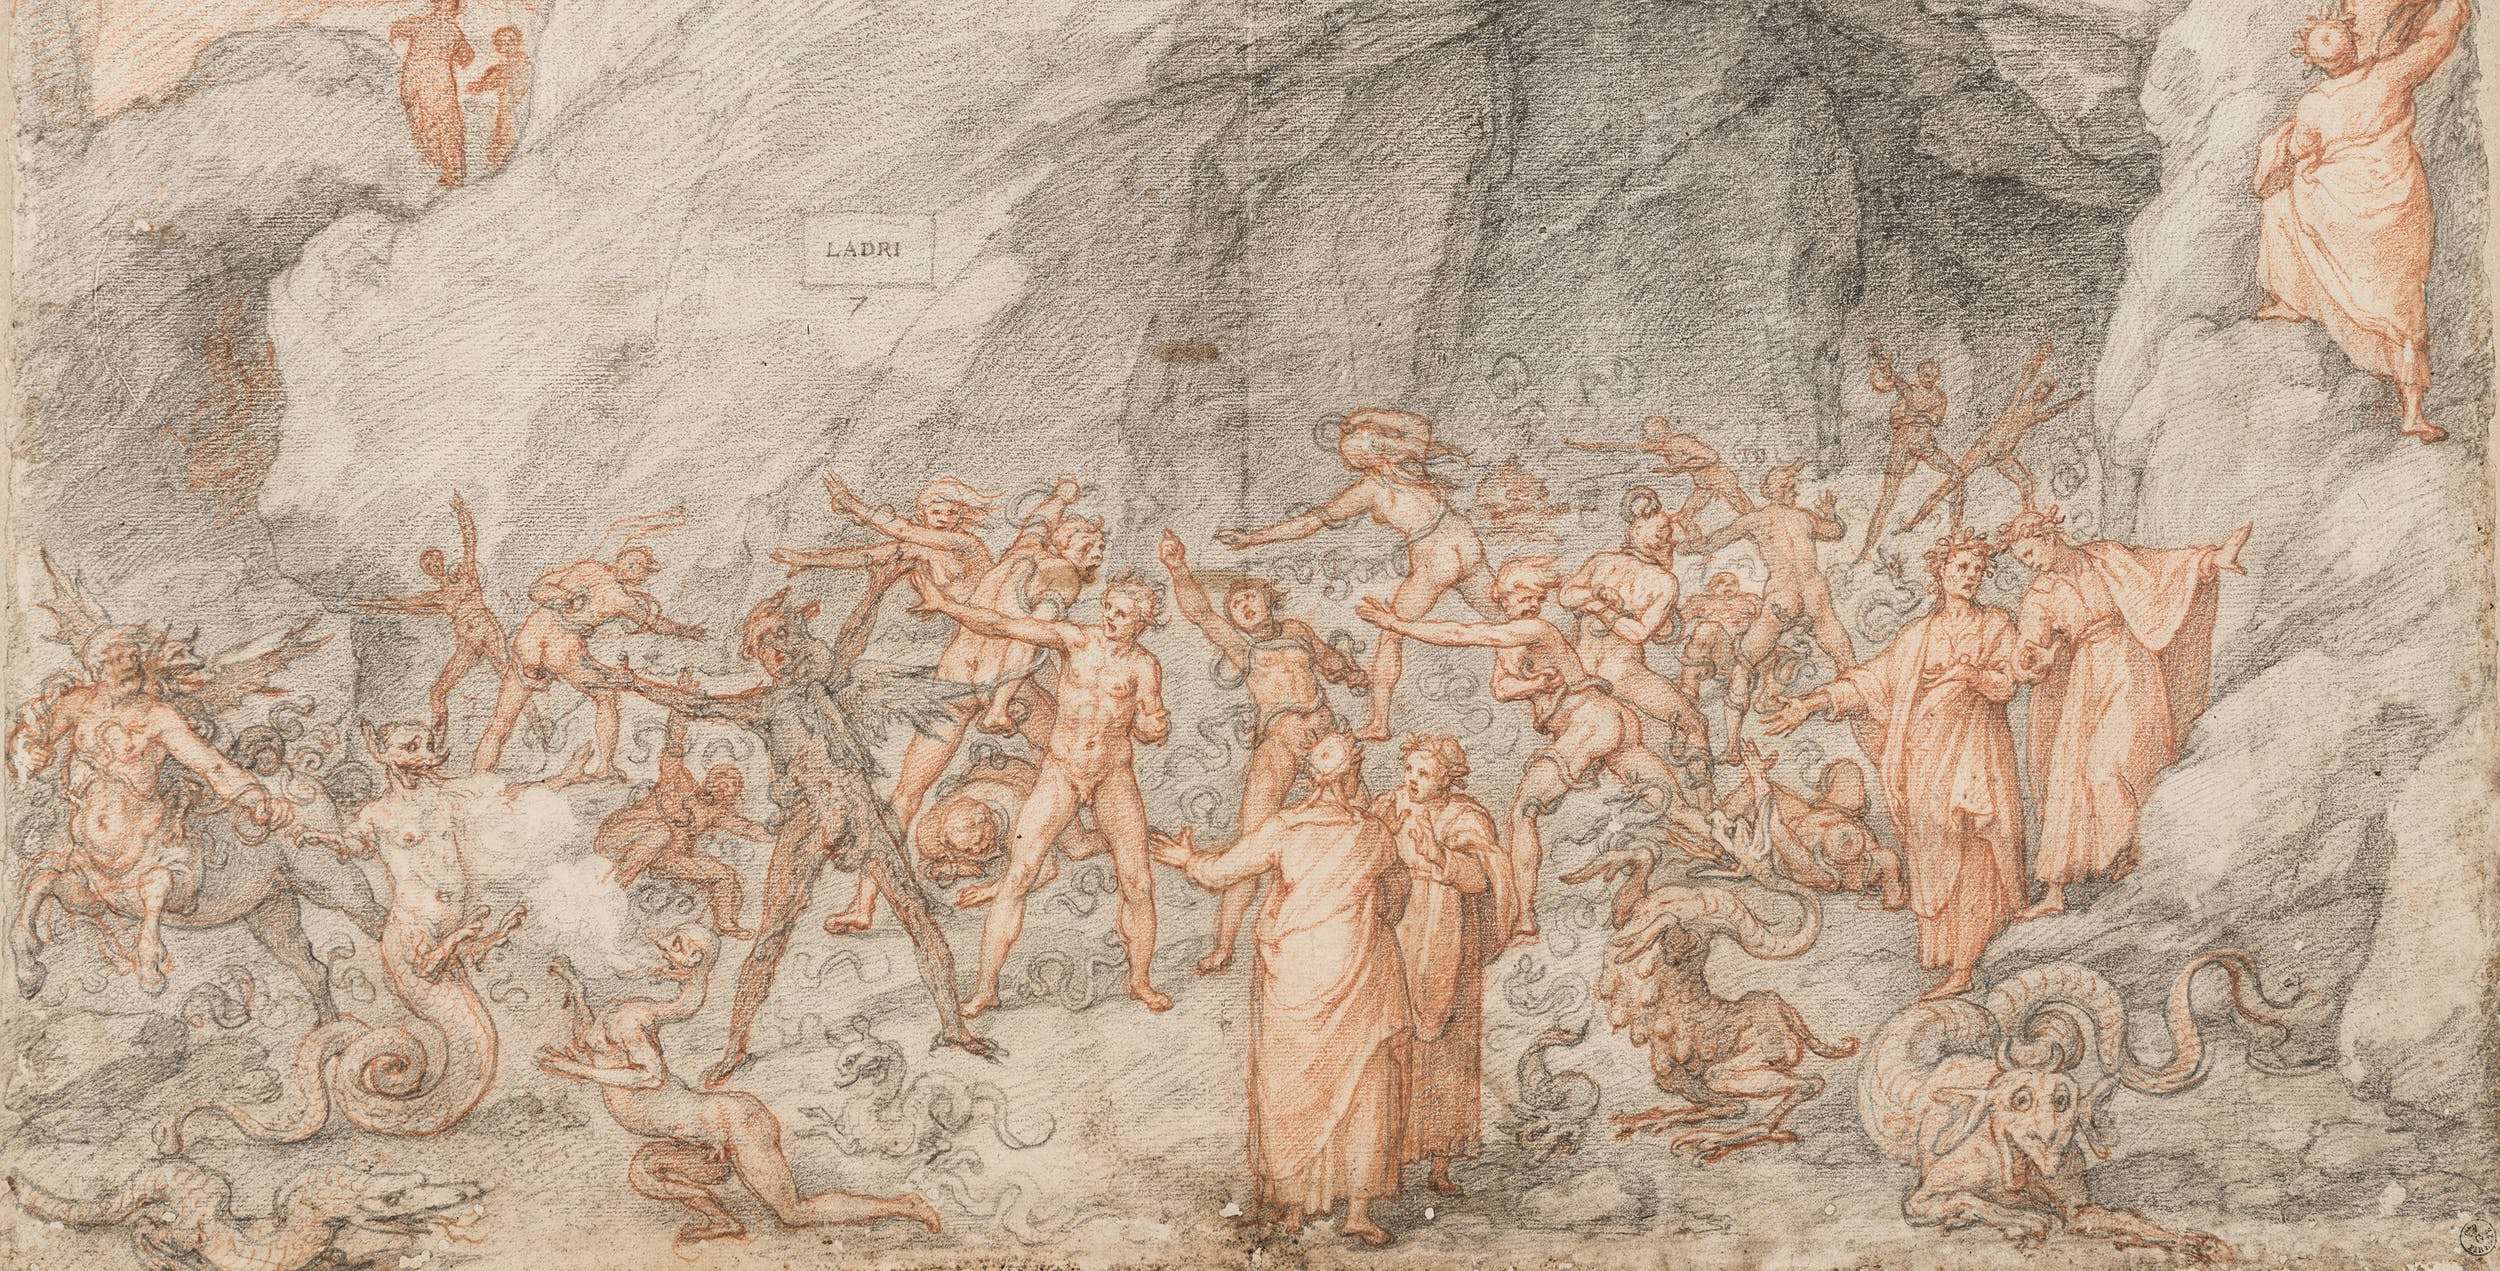 Rarely-Seen Illustrations of Dante's Divine Comedy Are Now Free Online, Courtesy of the Uffizi Gallery